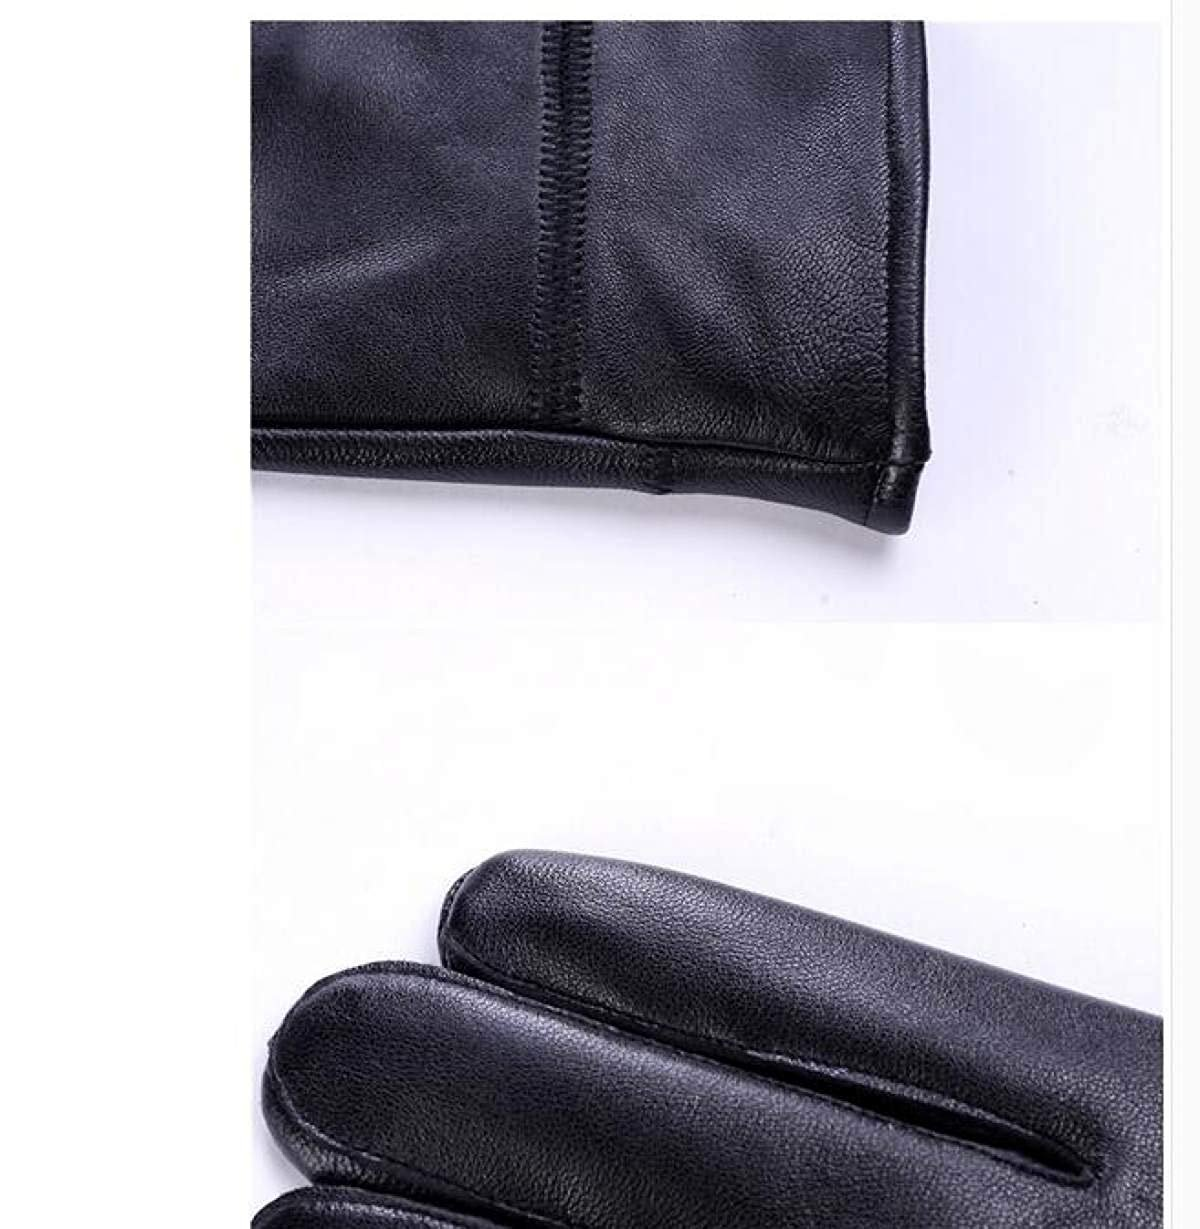 CWJ Gloves Ladies Ride Thicken Warm Autumn and Winter Men's Style,WomenBlack,Large by CWJ (Image #4)